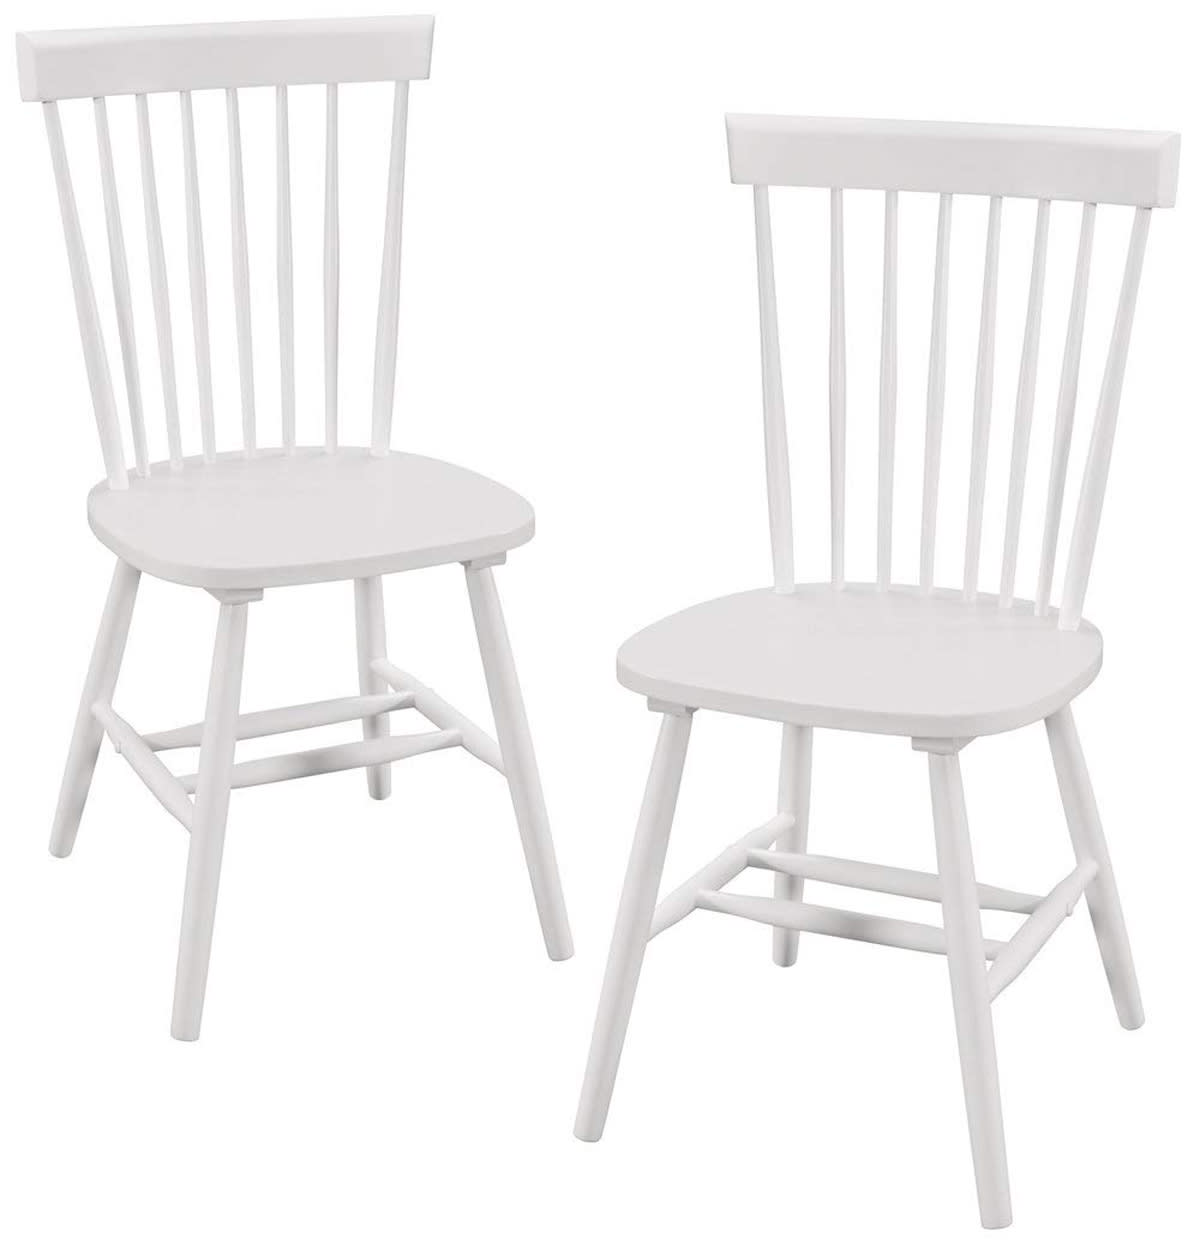 The Most Beautiful Kitchen Chairs You Can Buy on Amazon for $100 or Less: gallery image 1